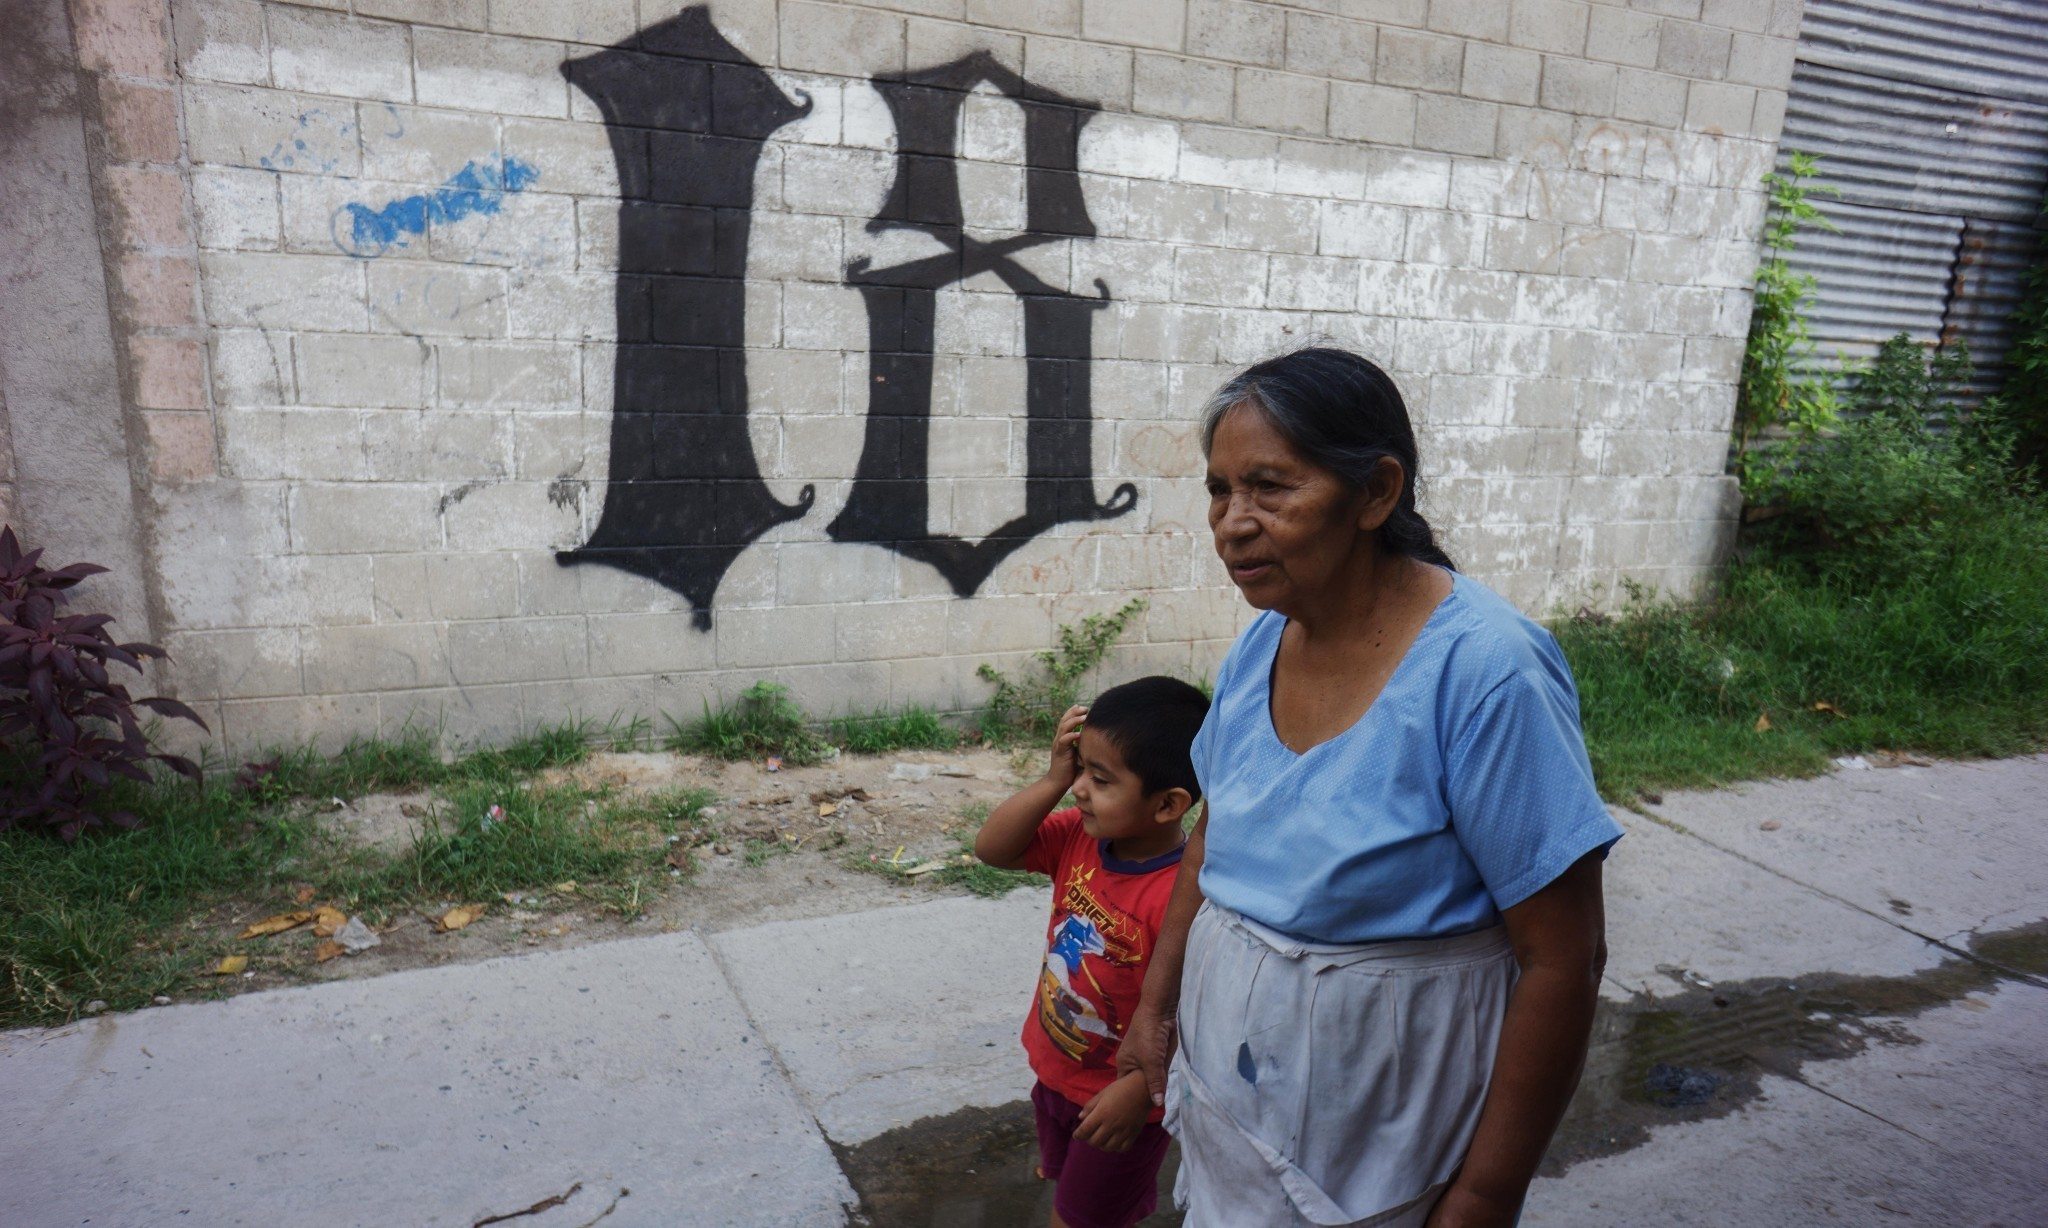 'It's a crime to be young and pretty': girls flee predatory Central America gangs